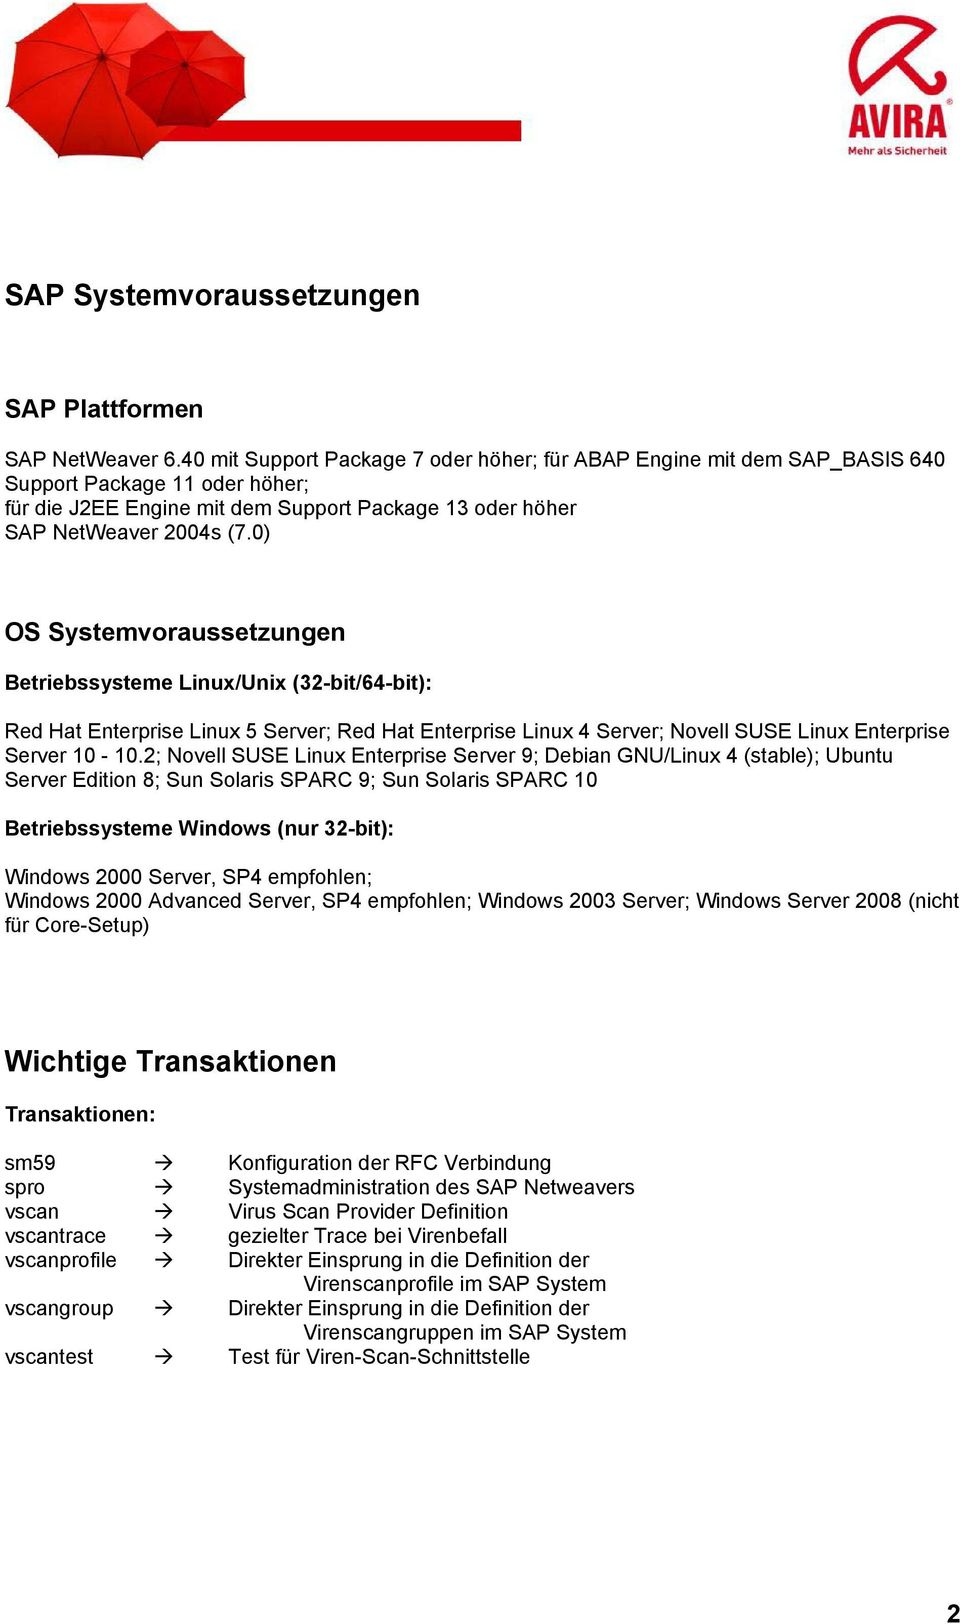 0) OS Systemvoraussetzungen Betriebssysteme Linux/Unix (32-bit/64-bit): Red Hat Enterprise Linux 5 Server; Red Hat Enterprise Linux 4 Server; Novell SUSE Linux Enterprise Server 10-10.